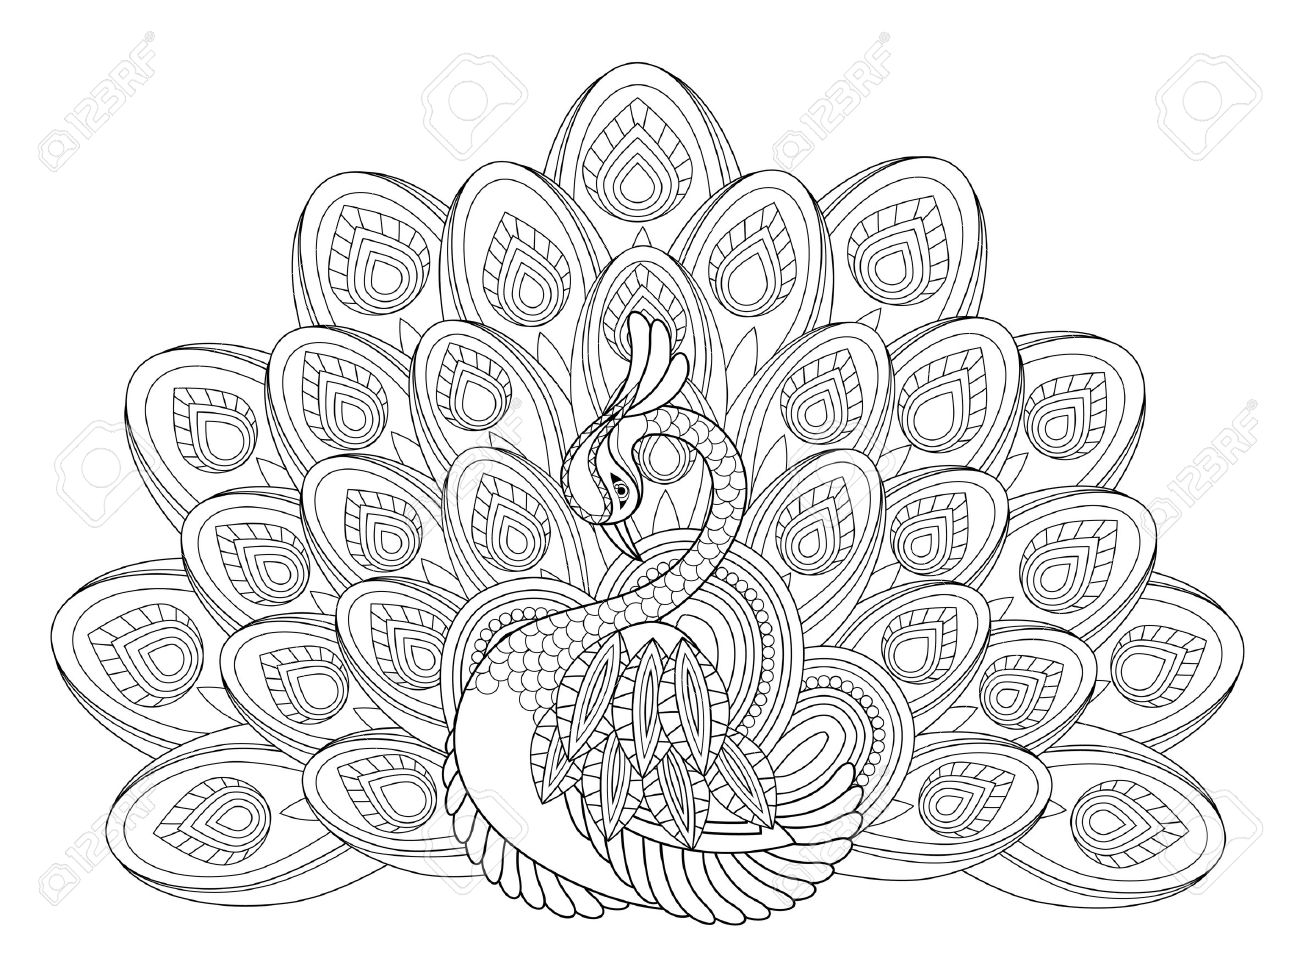 elegant peacock coloring page in exquisite style stock vector 45962509 - Peacock Coloring Page